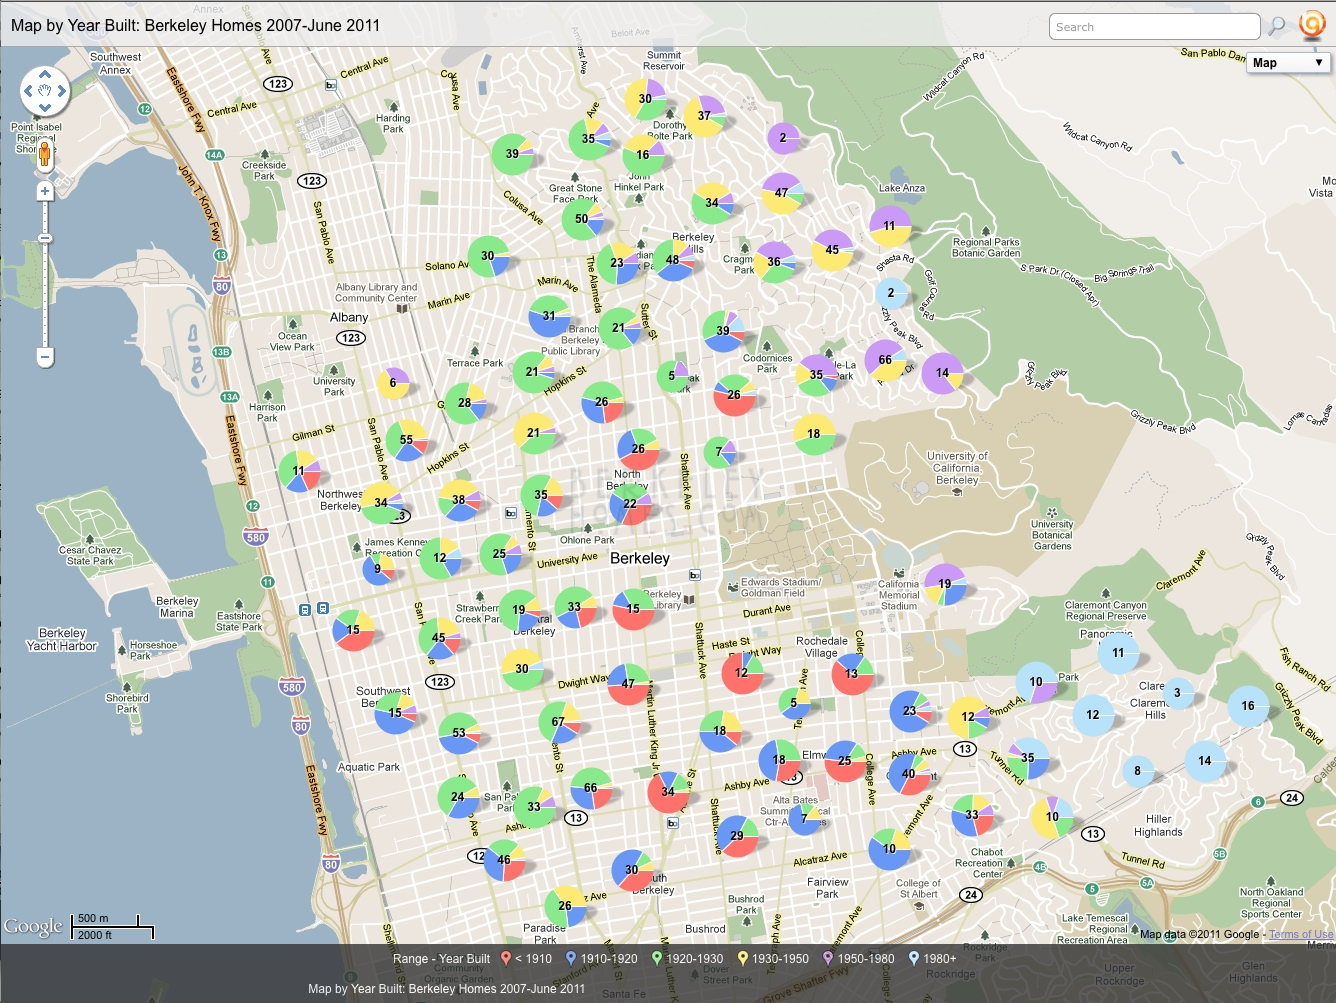 map-berkeley-mls-research-2007-2011-01-06-single-family-home-year-built-1.jpg